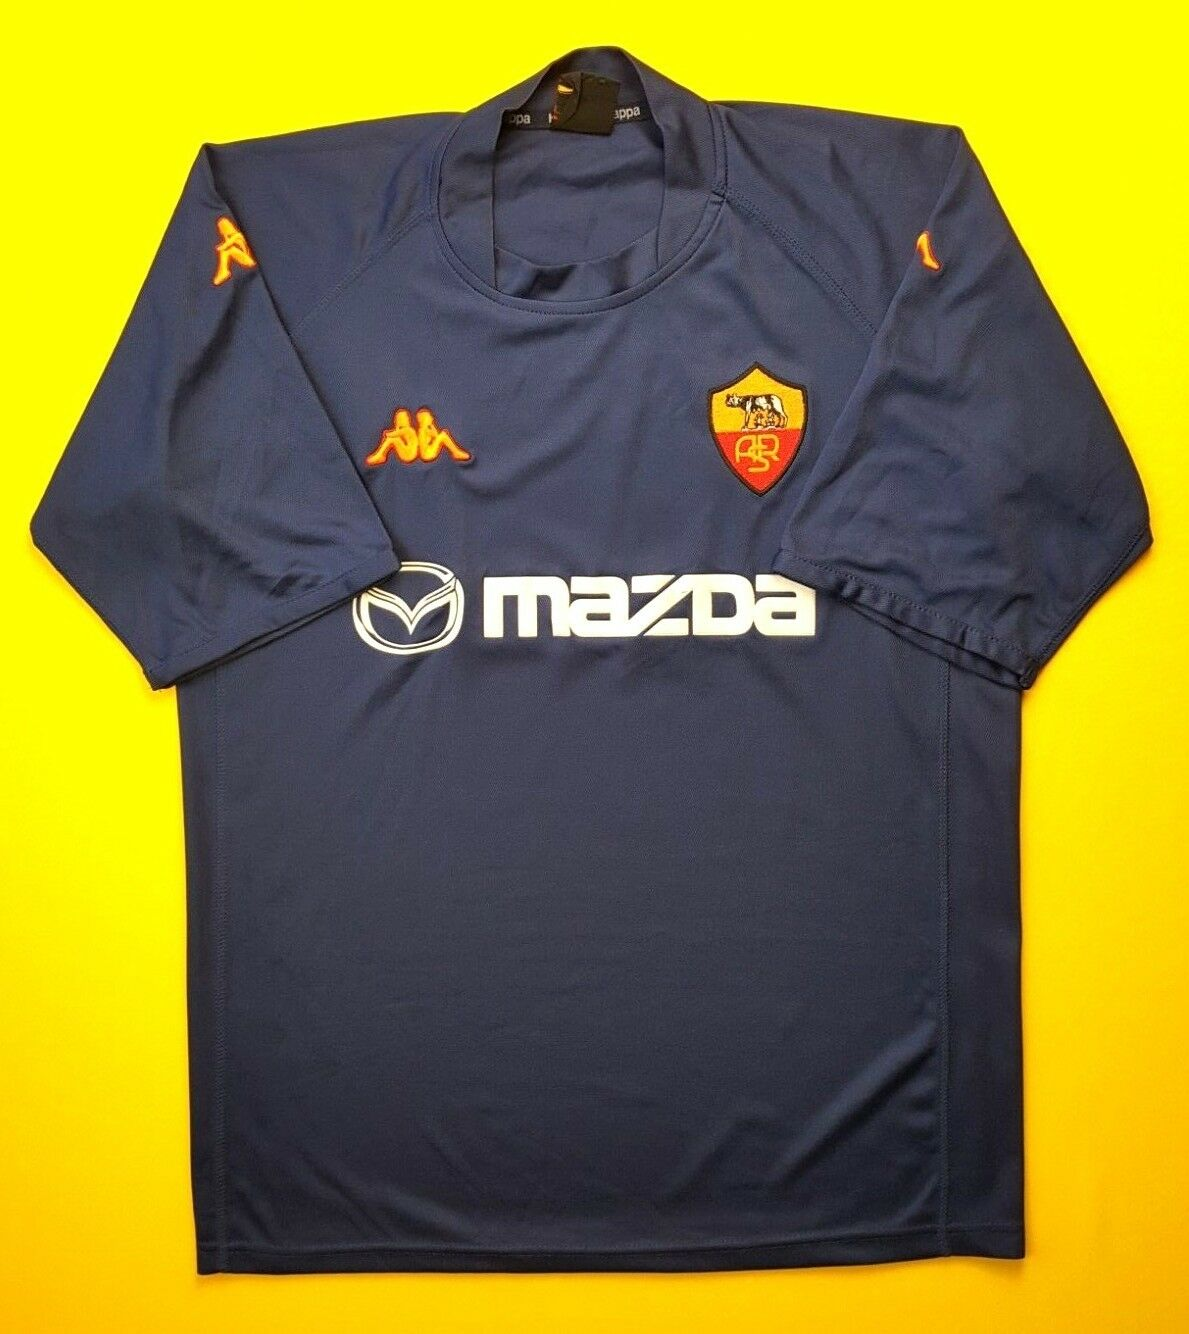 abab242900a 4.8 5 Roma third jersey XL 2002 shirt football Kappa soccer 2003 ...